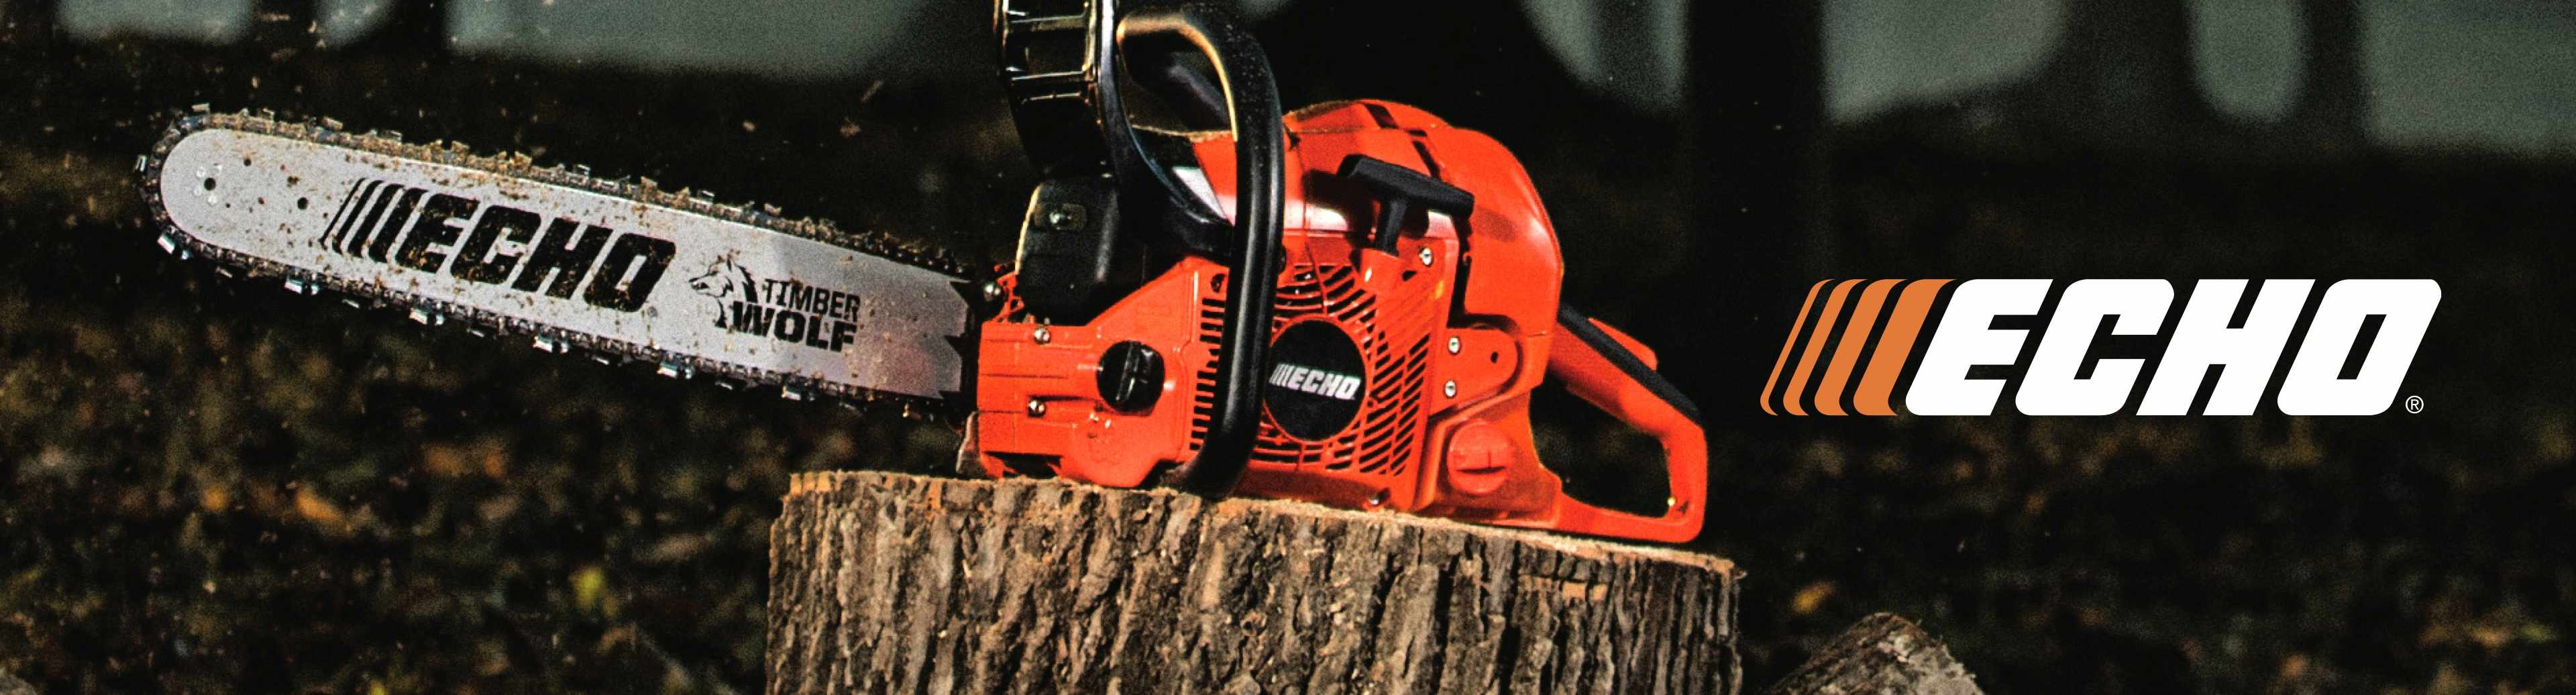 Echo logo with Echo chainsaw